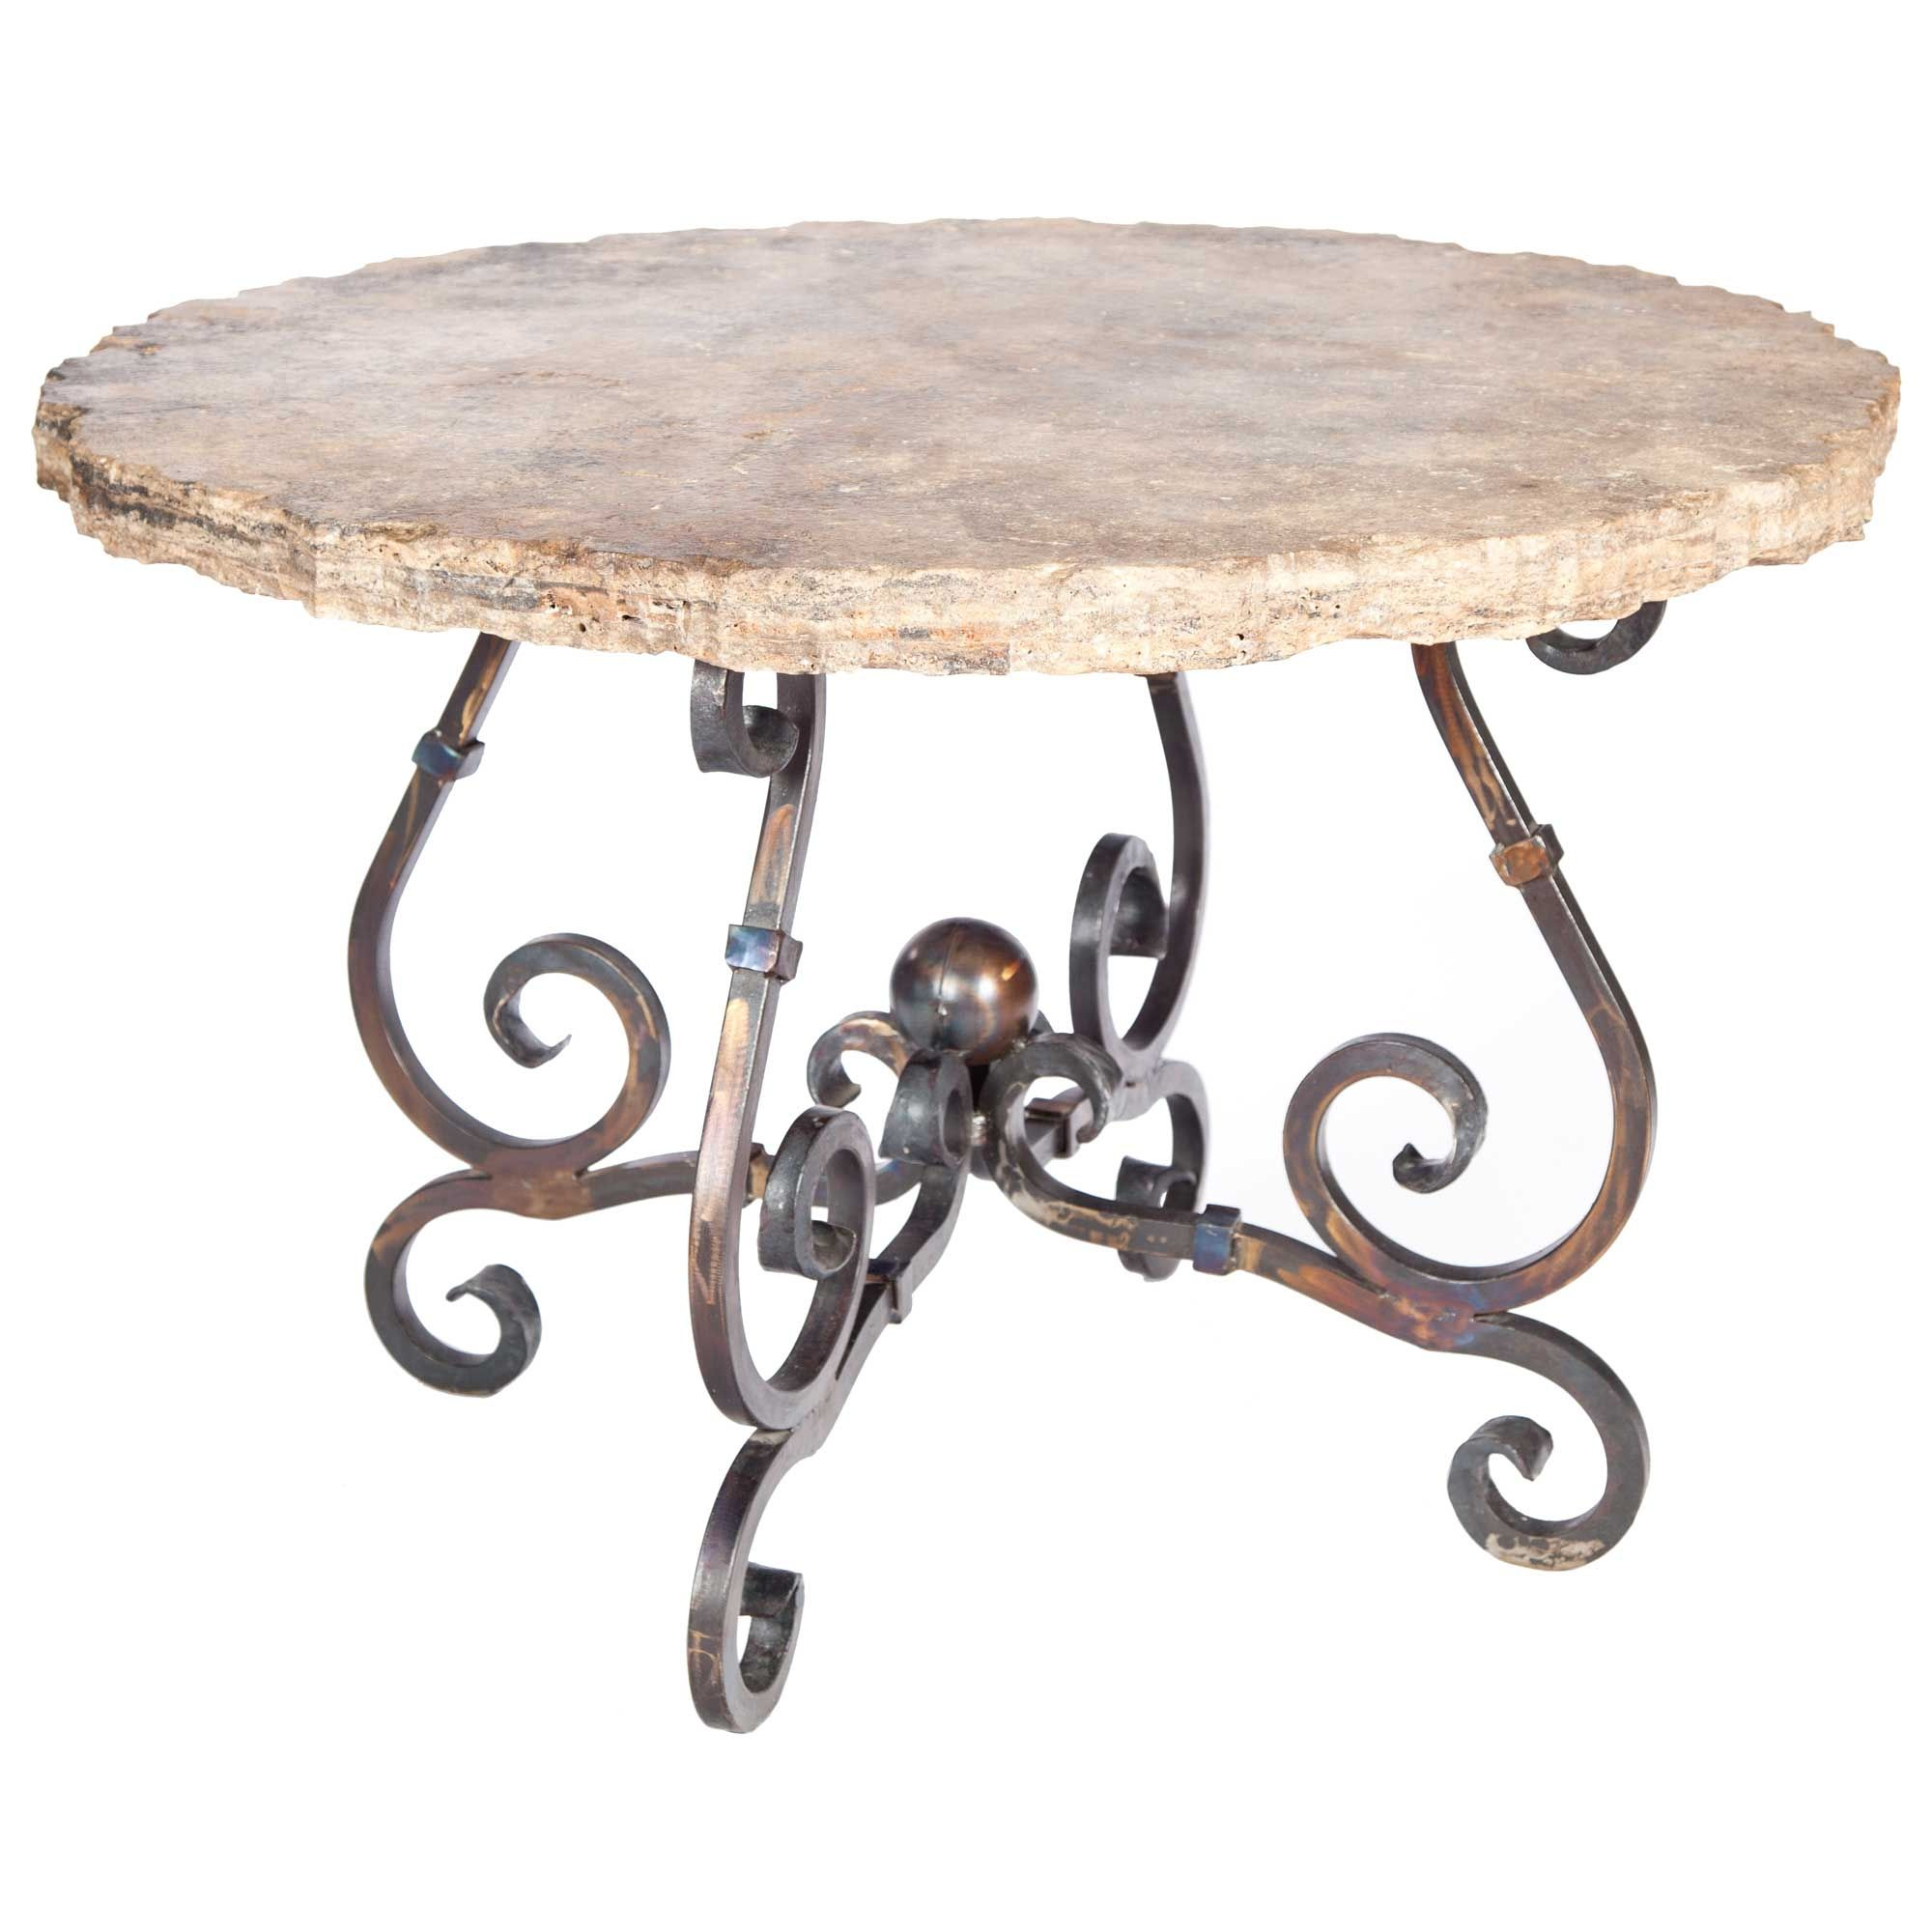 Pictured Here Is The French Dining Table With Wrought Iron Base And 48 Round Marble Table Top French Iron Dining Table Dining Table Round Marble Table